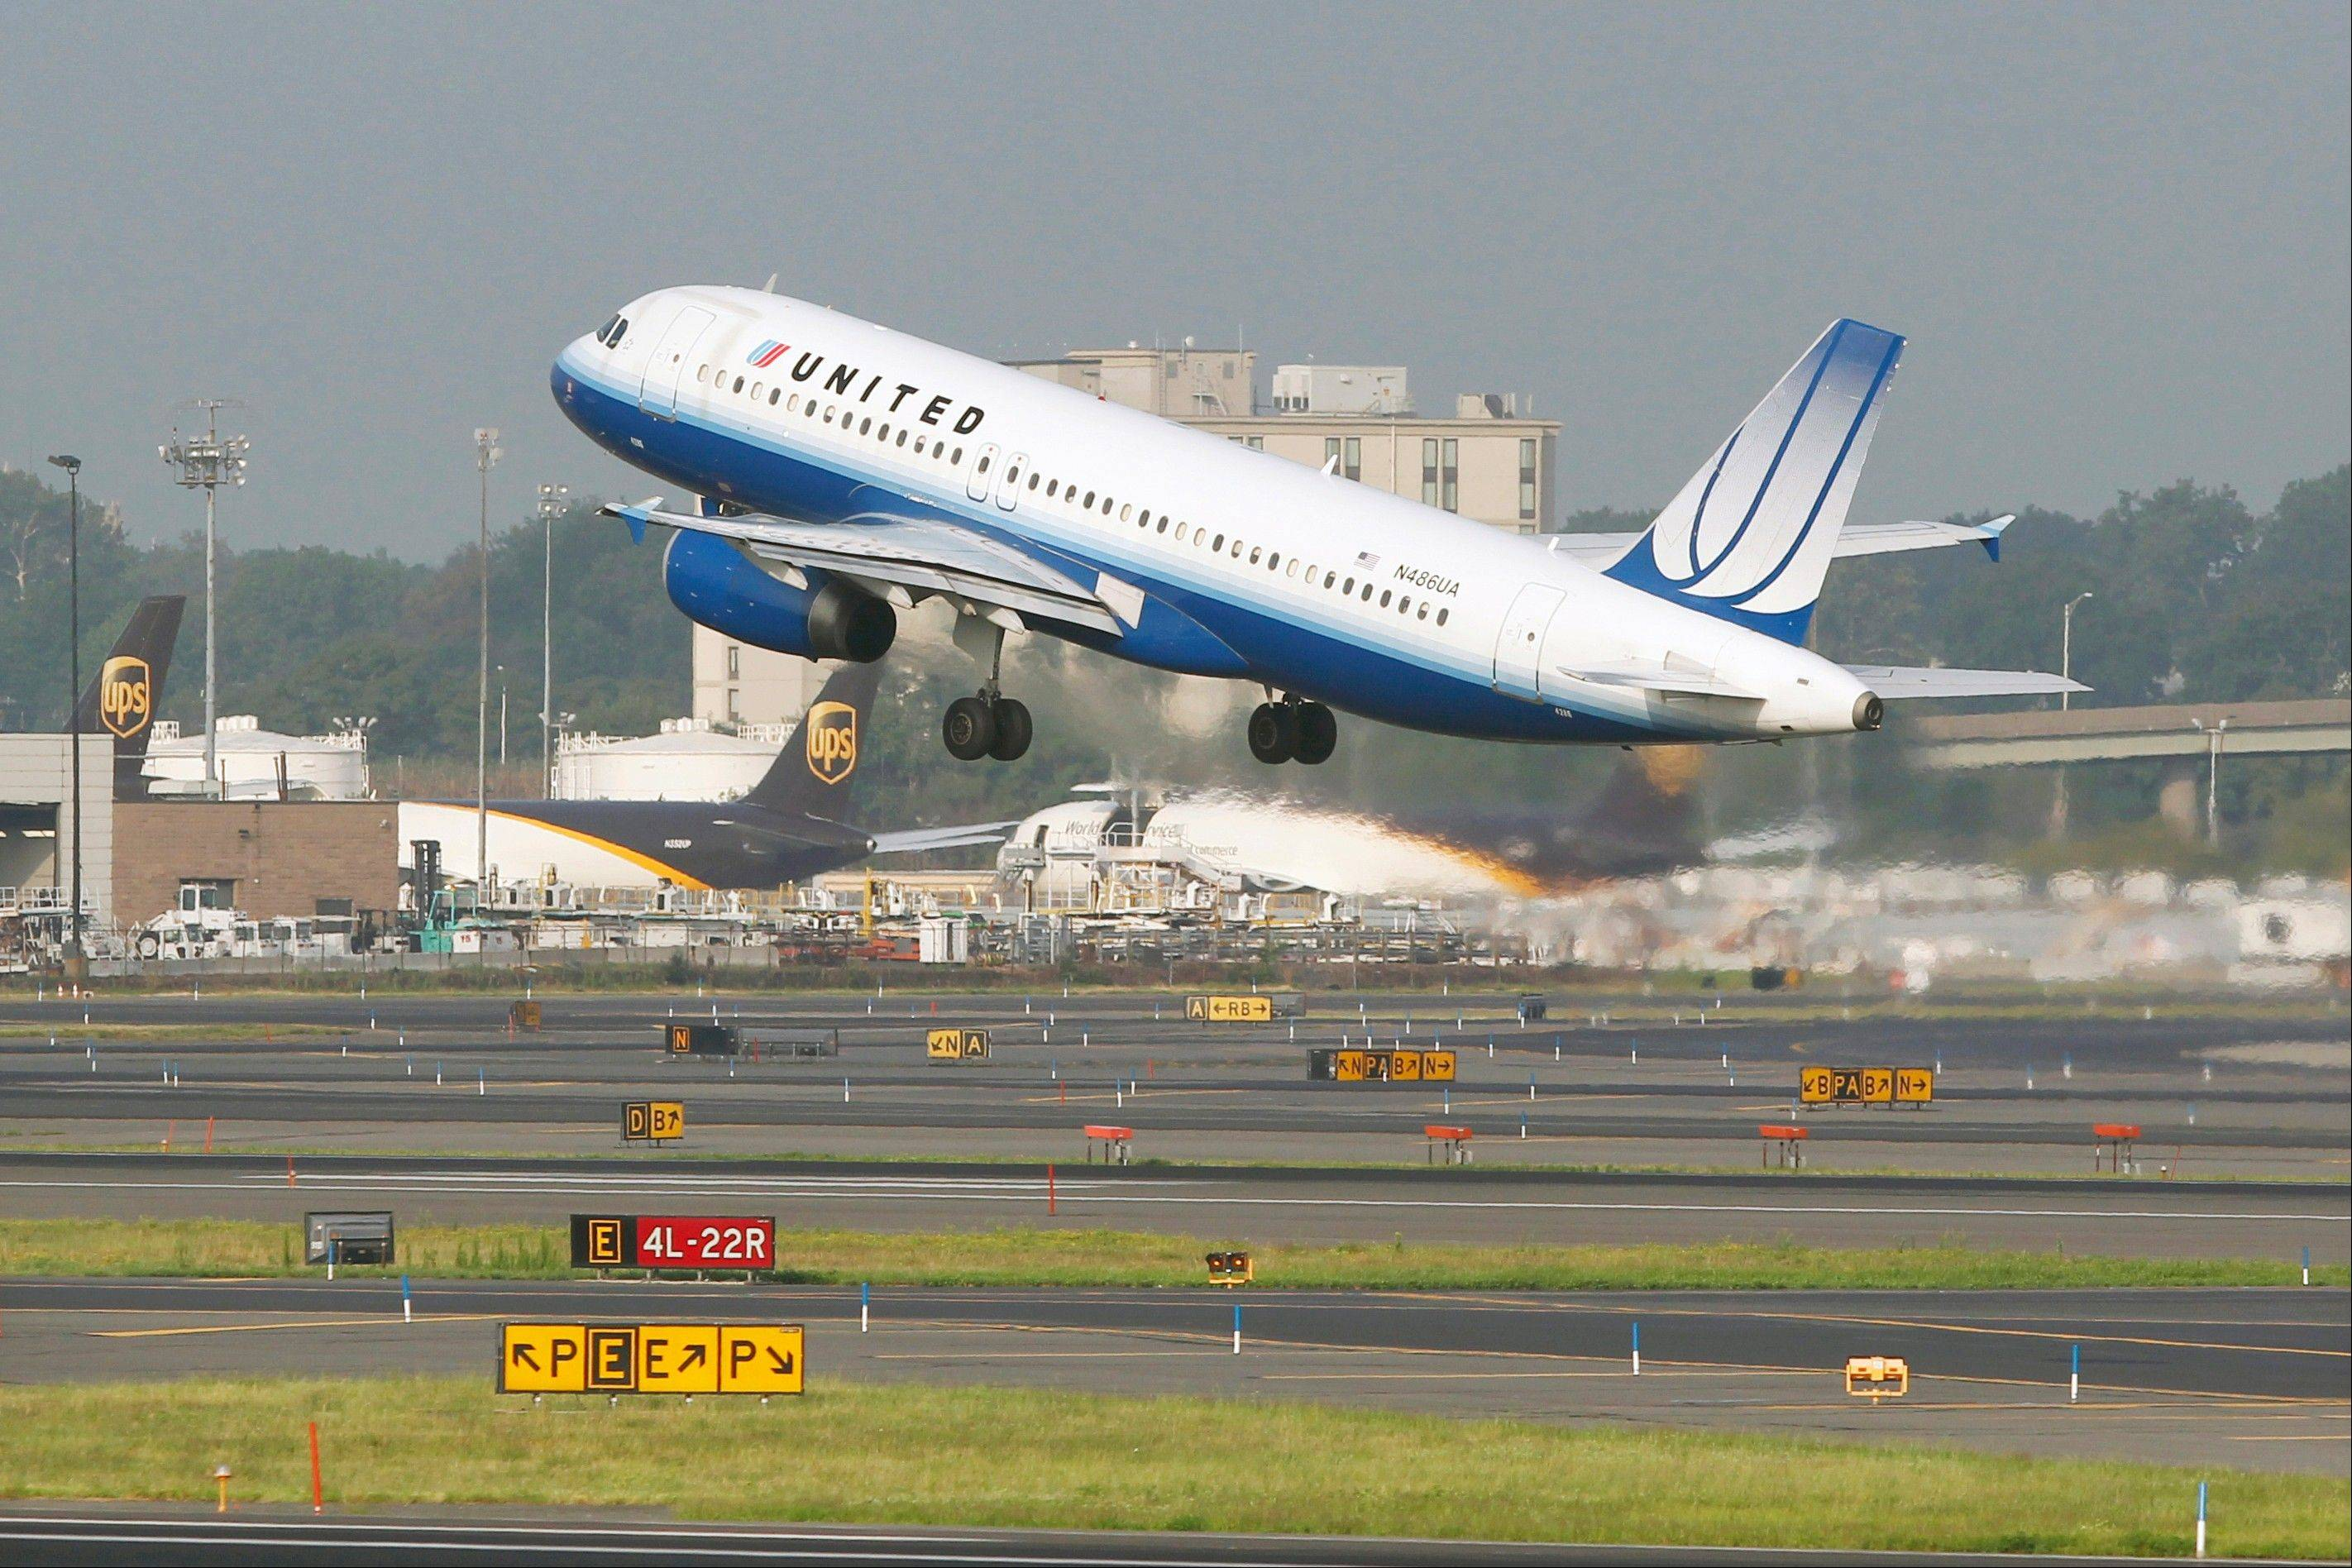 A United airlines passenger plane takes off at Newark Liberty International airport in Newark, N.J.